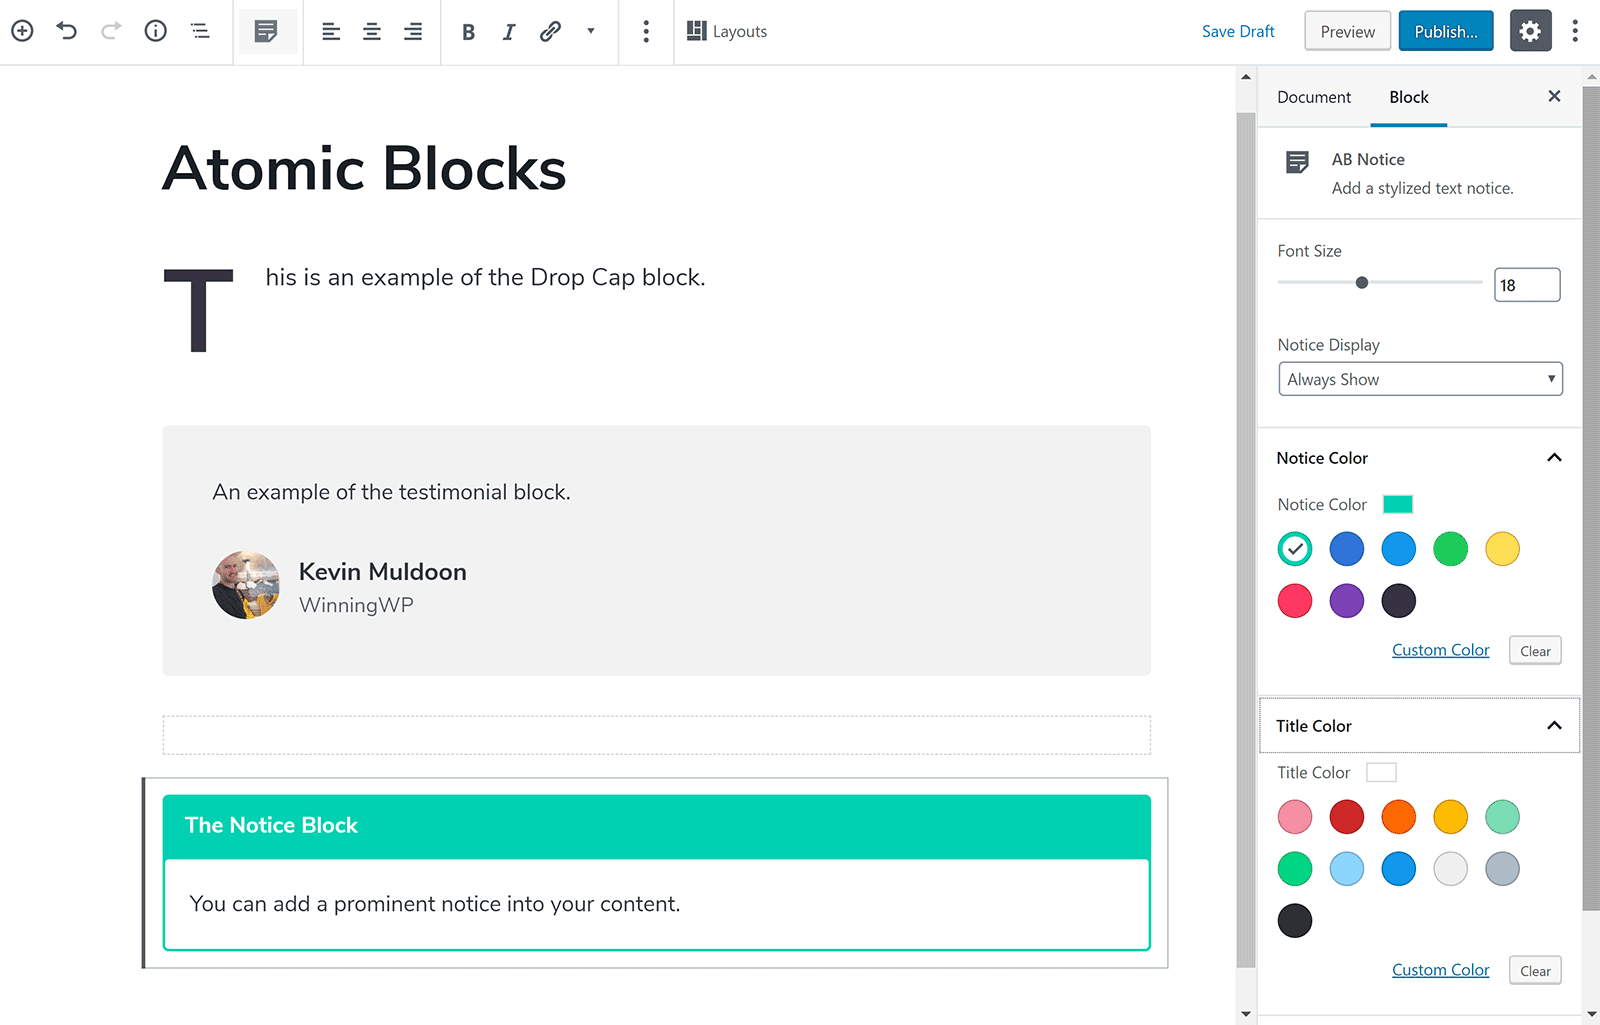 Styling Your Content with Atomic Blocks